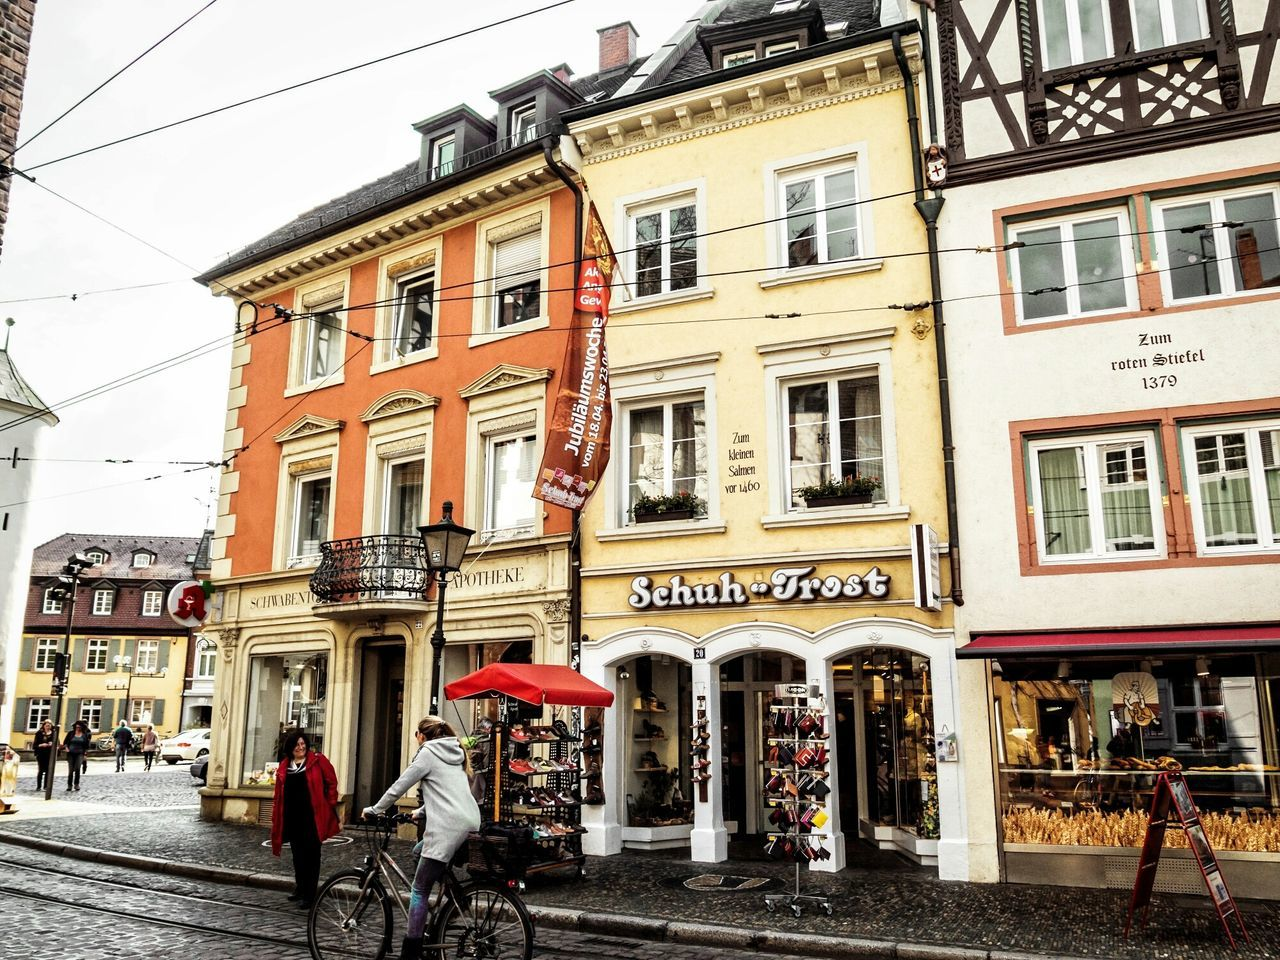 Nicht ganz bei Trost ... CyclingUnites Urban Perspectives From My Point Of View Street Photography Better Look Twice On The Way Streetphoto_color People Watching The Devil's In The Detail People Are People On The Road The Shop Around The Corner Urban Photography Walking Around The Way Forward Urban Exploration Home Is Where The Art Is Hanging Out Colour Of Life Urban Lifestyle Fresh 3 Taking Photos in Freiburg My Year My View